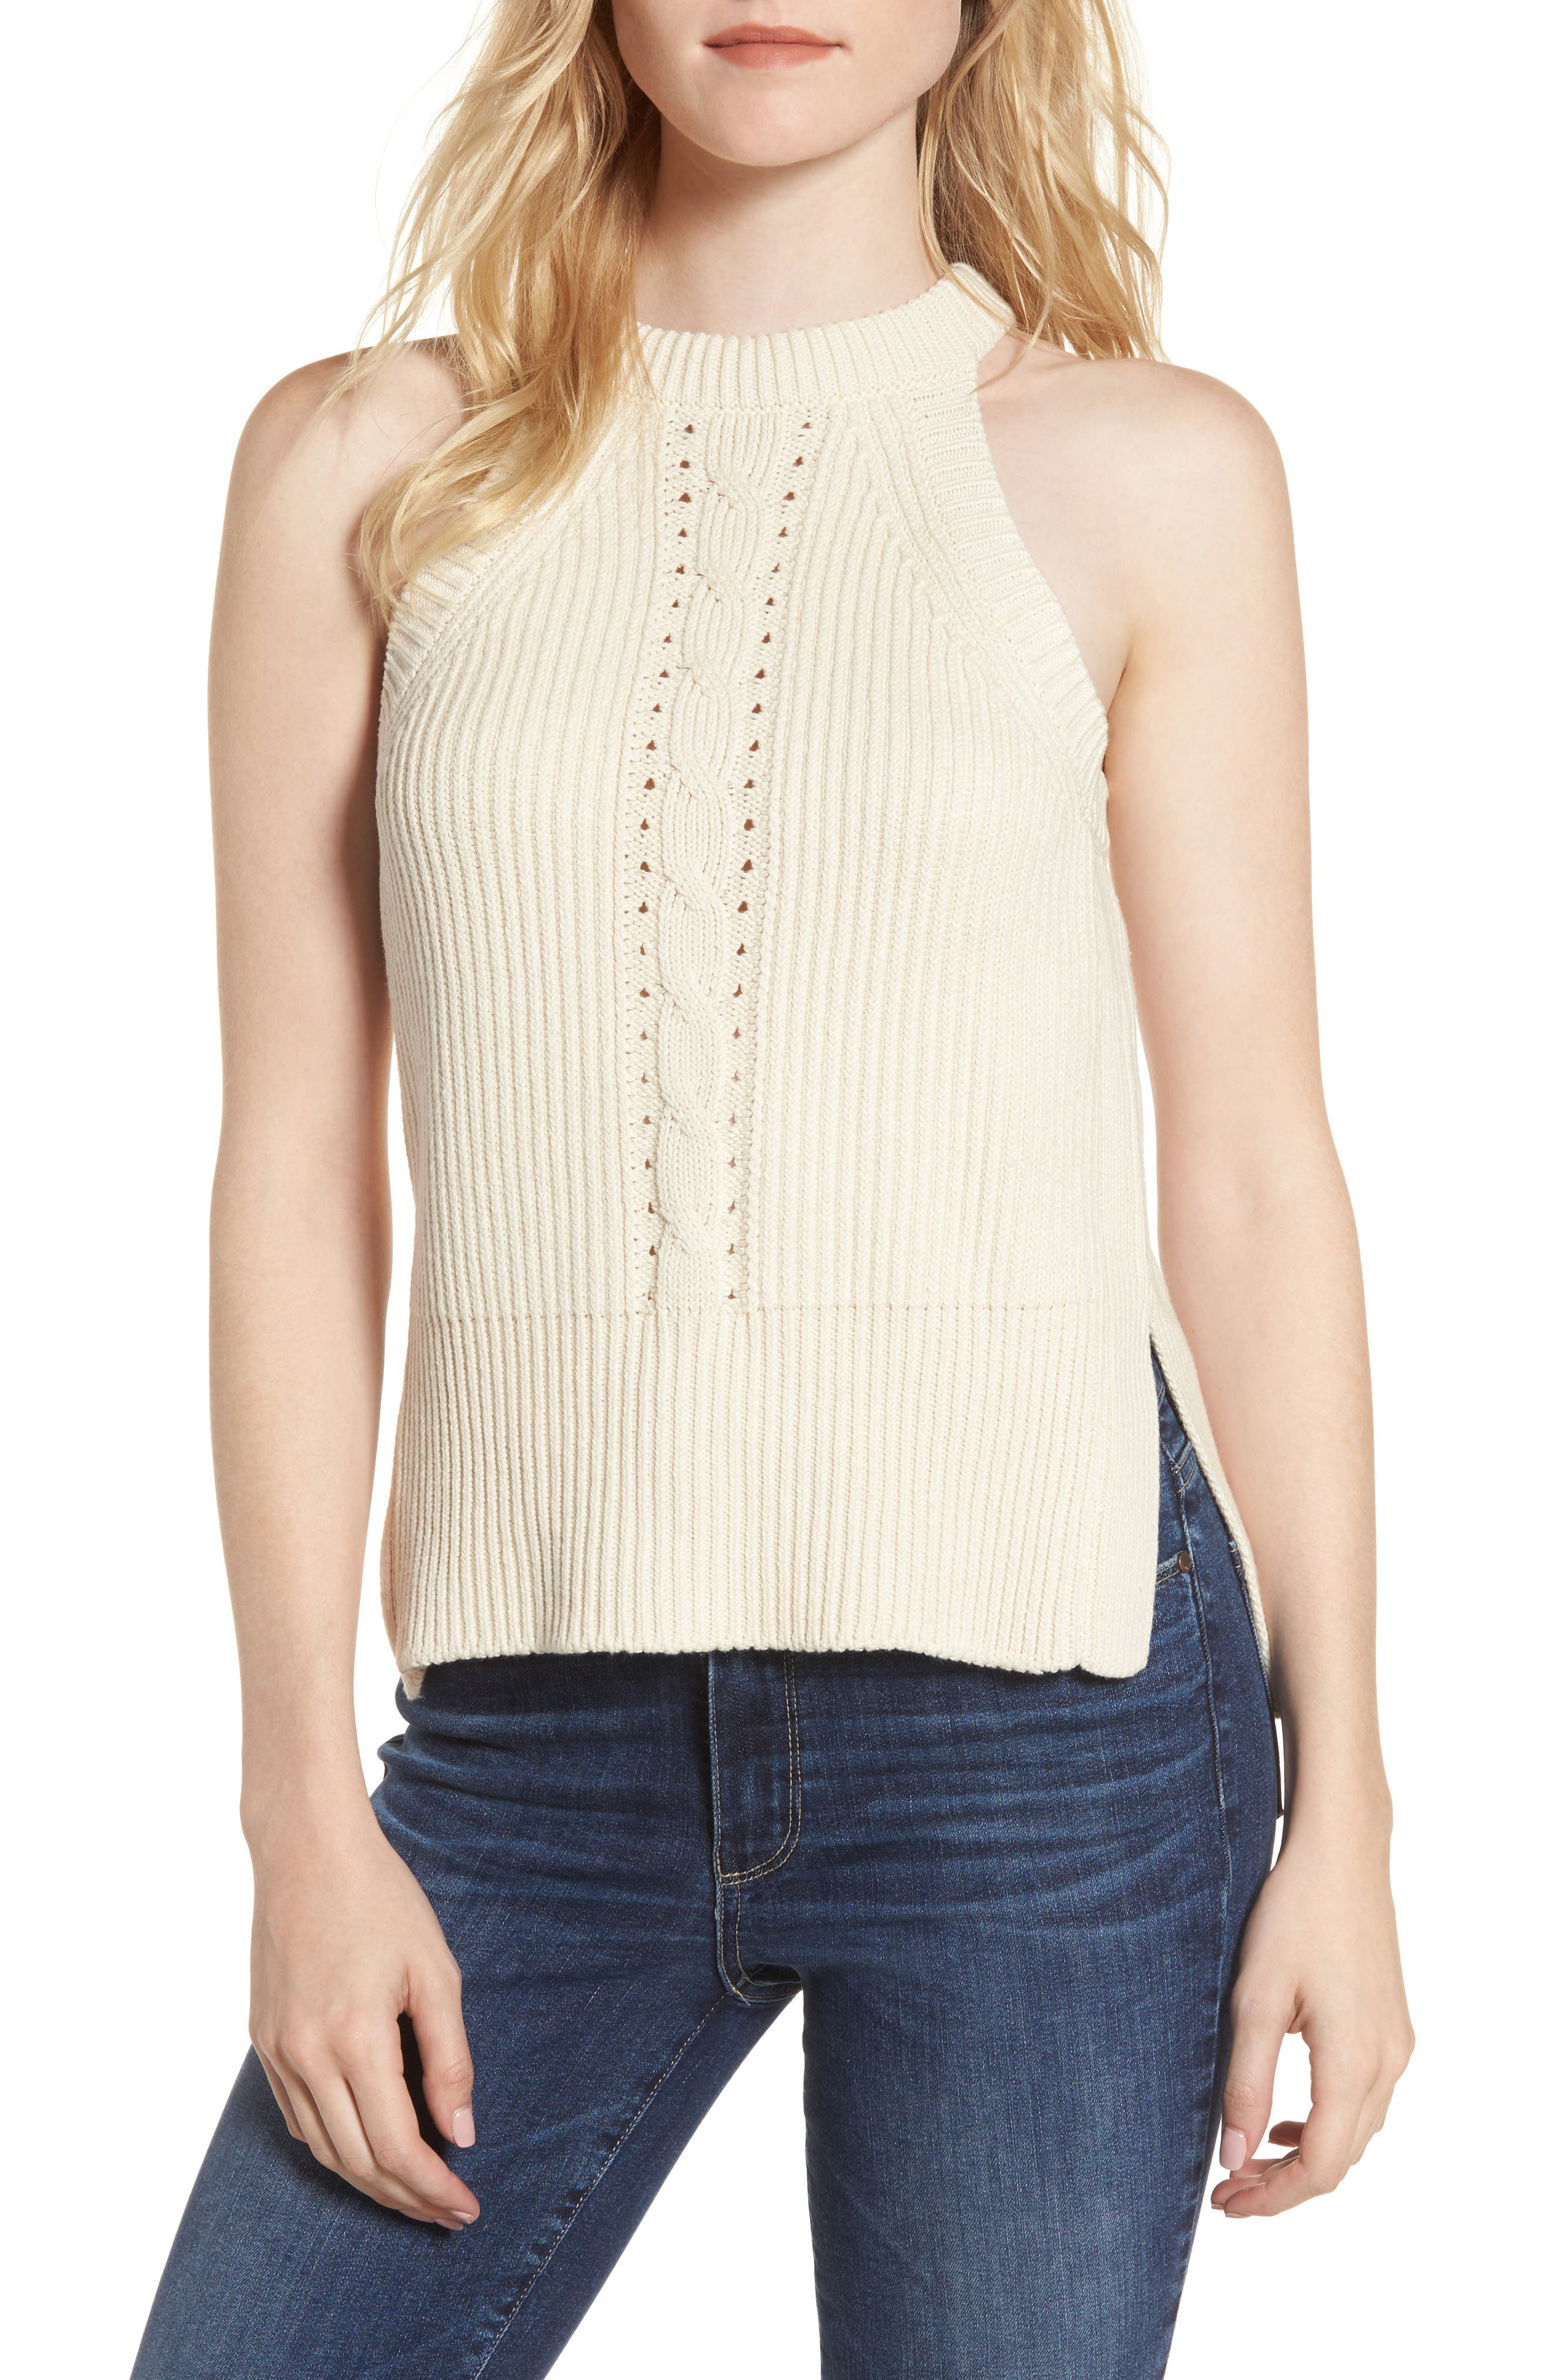 Main Image - Sincerely Jules Sleeveless Cable Sweater